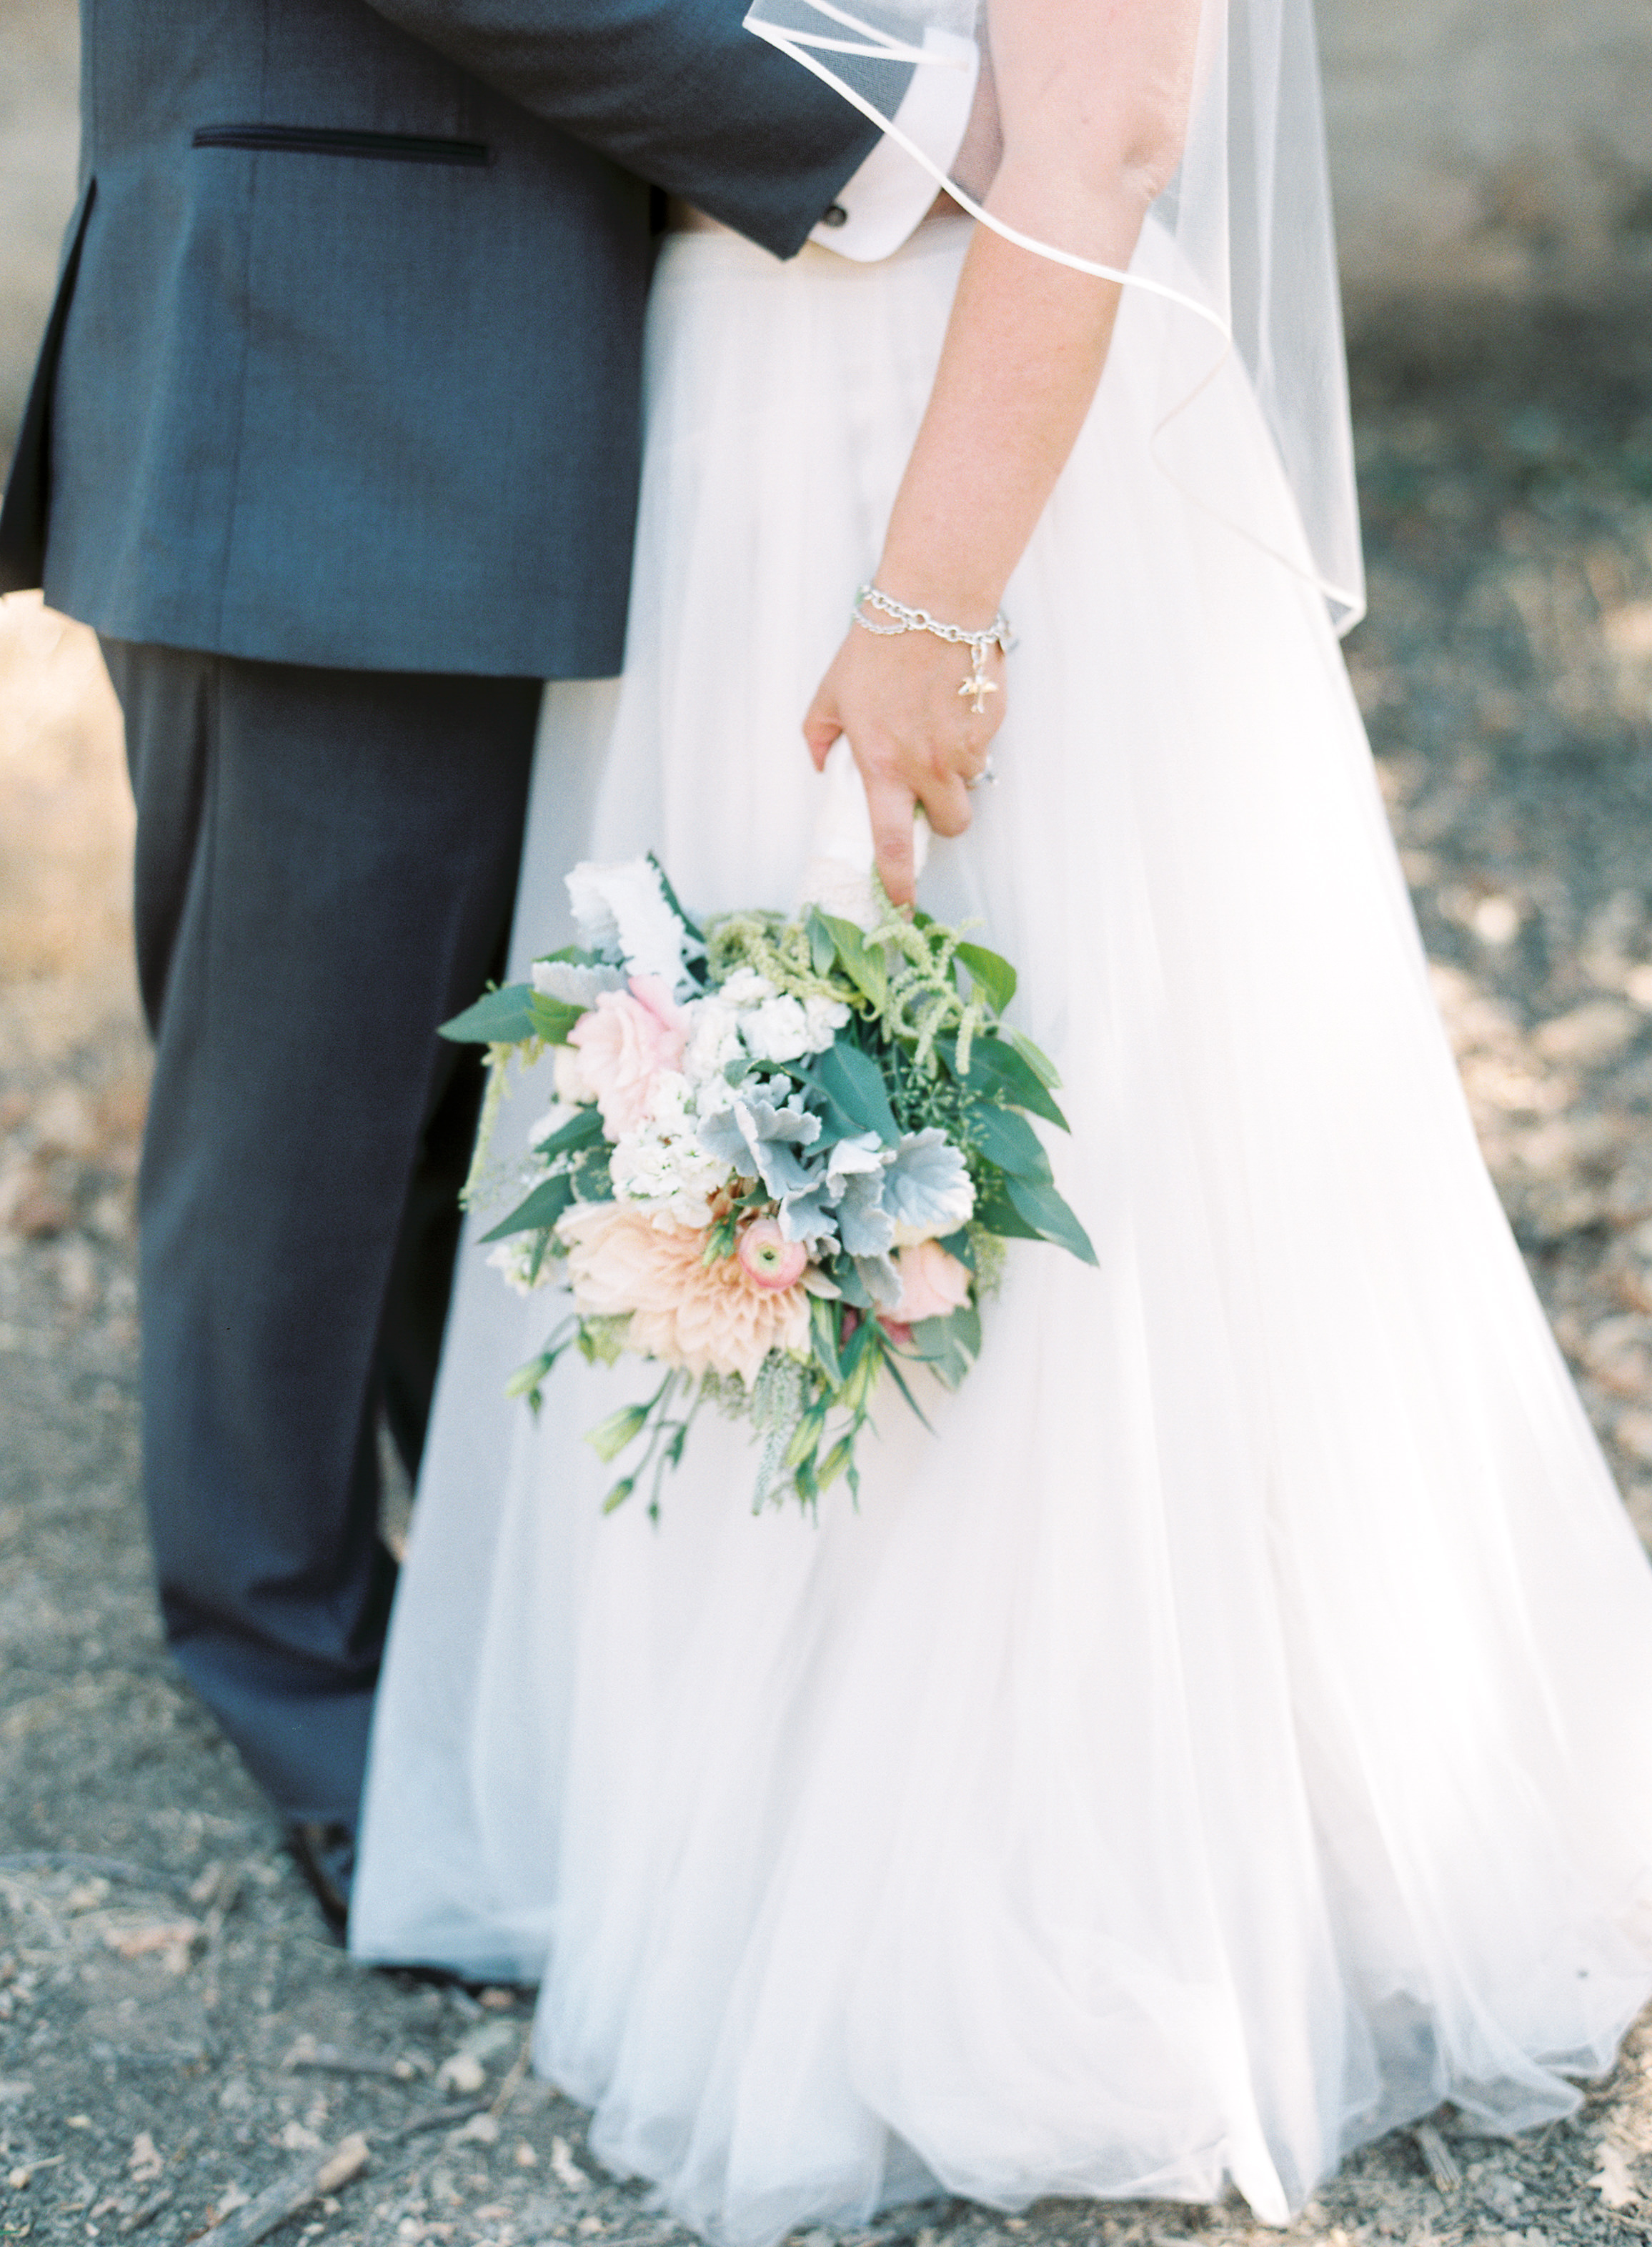 southern-inspired-wedding-at-ravenswood-historic-site-009-5.jpg